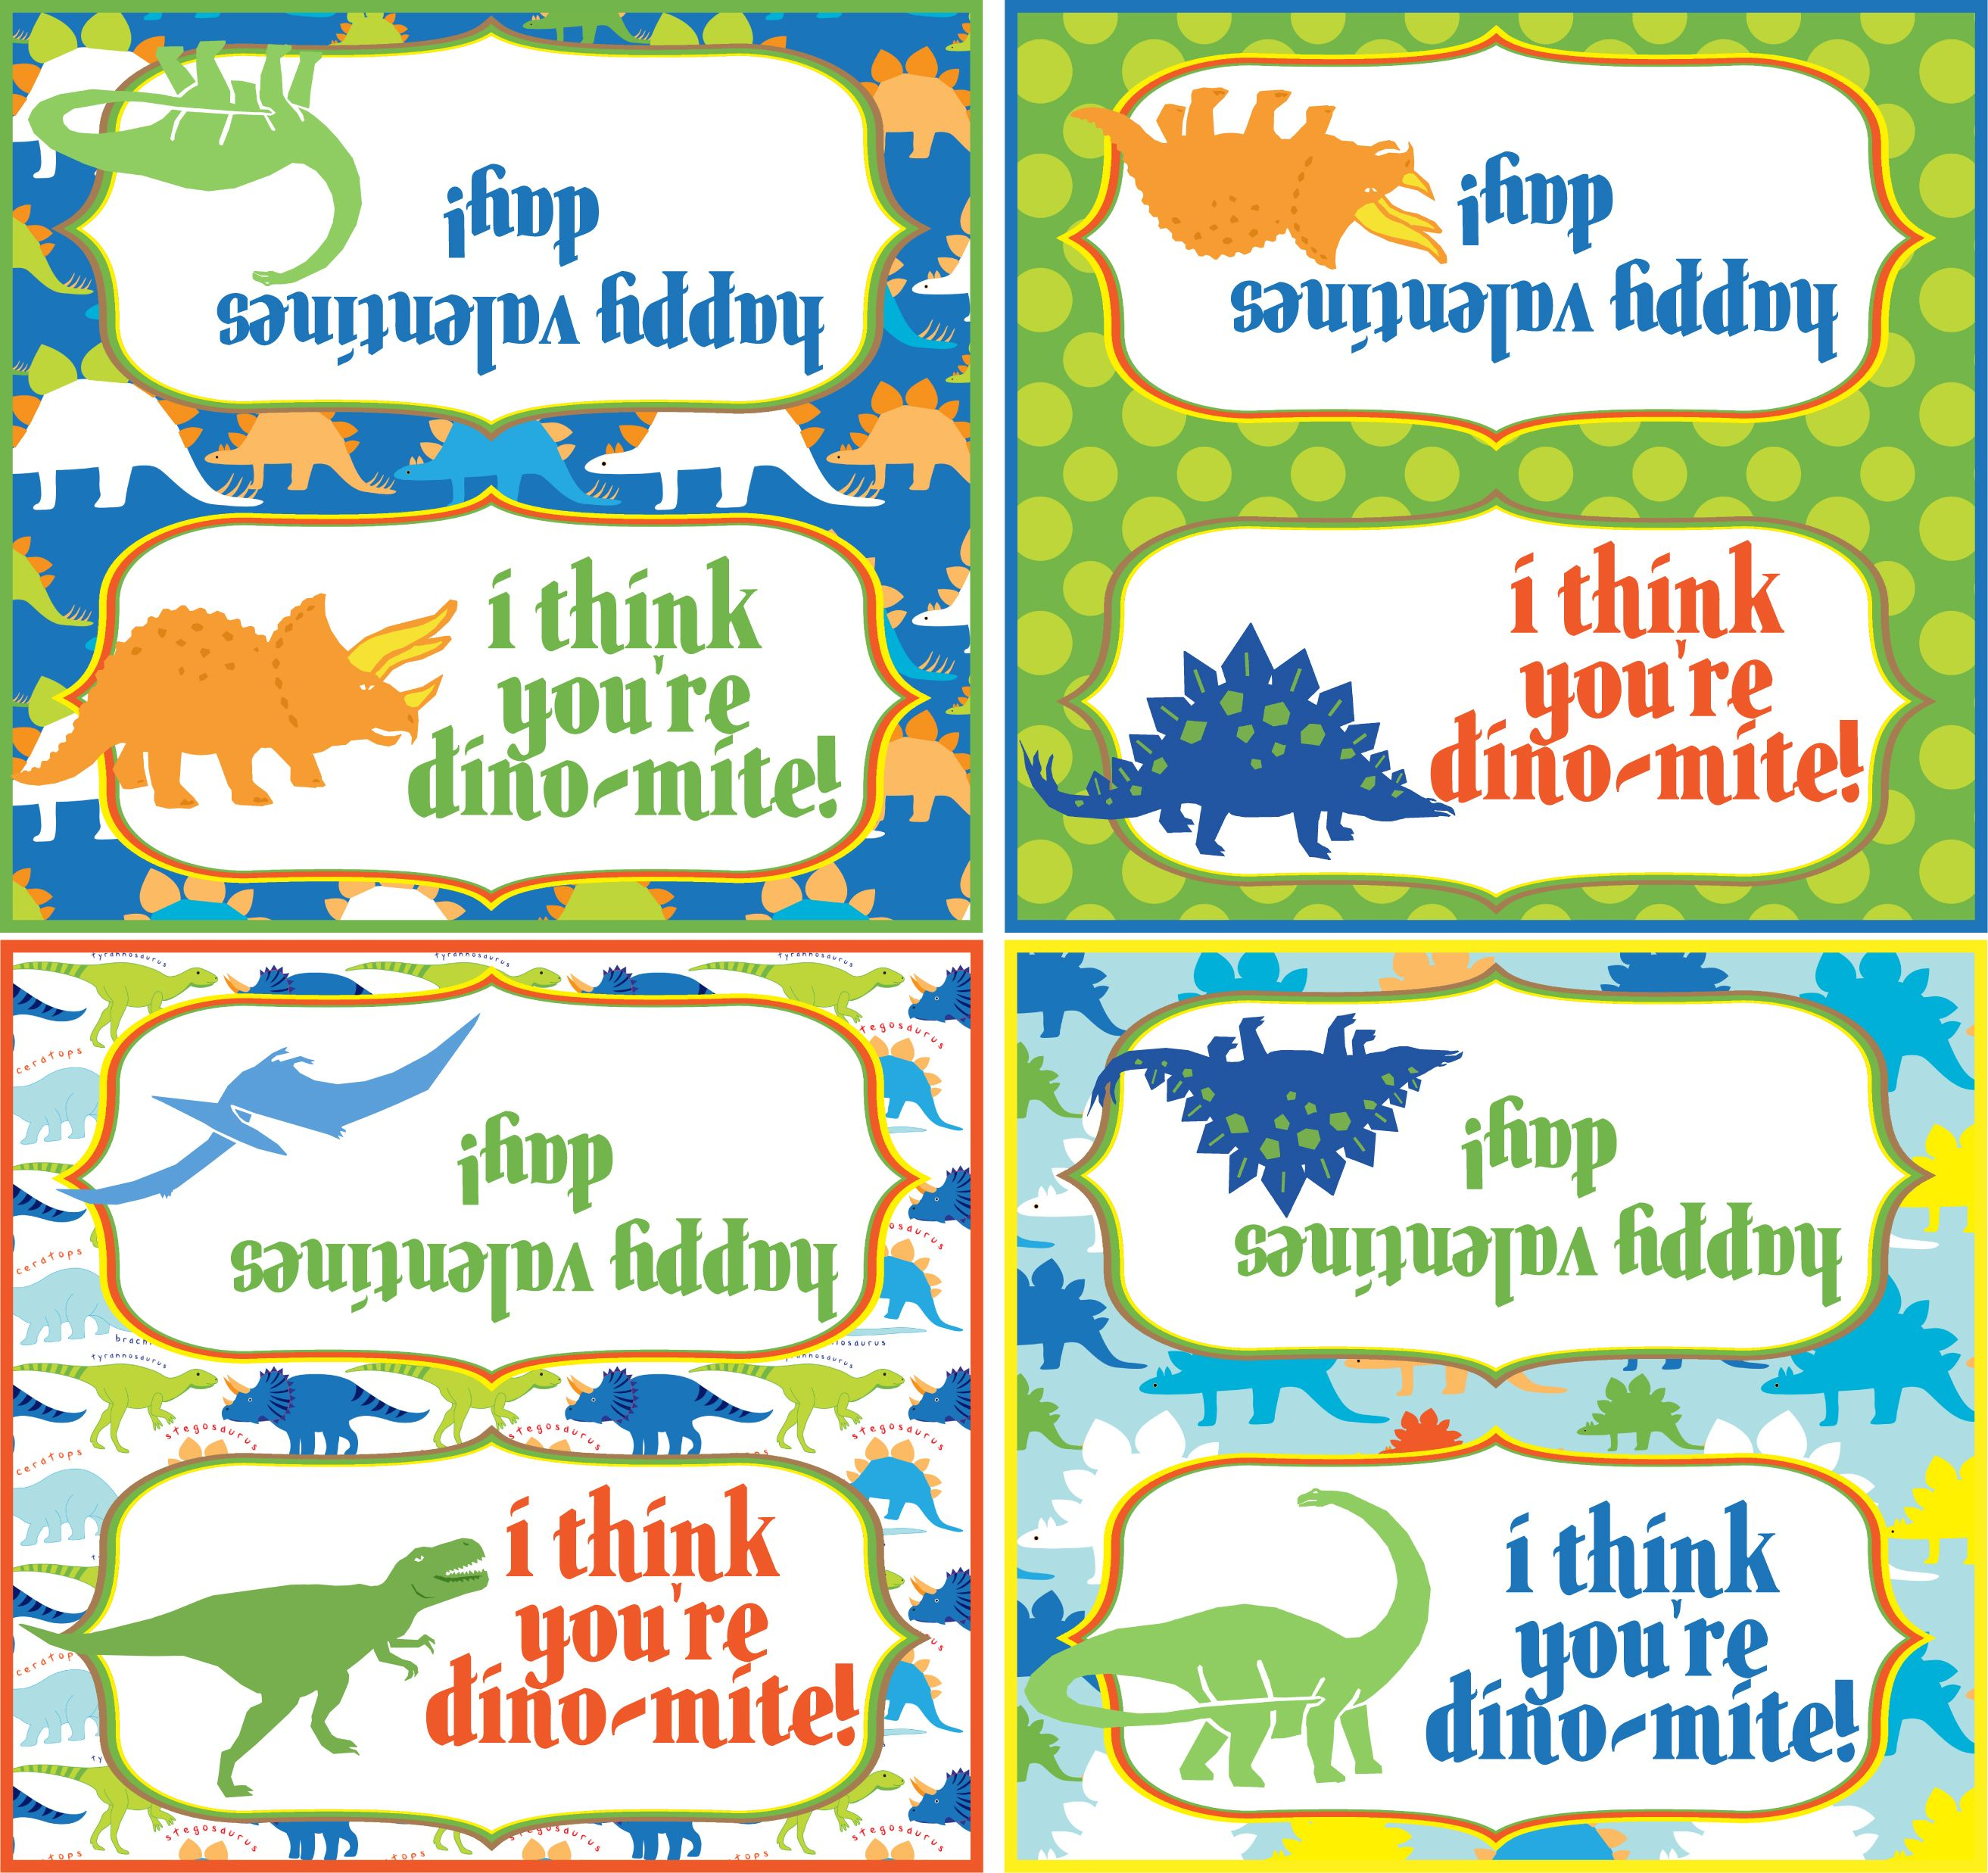 This is an image of Free Printable Bag Toppers intended for thanksgiving